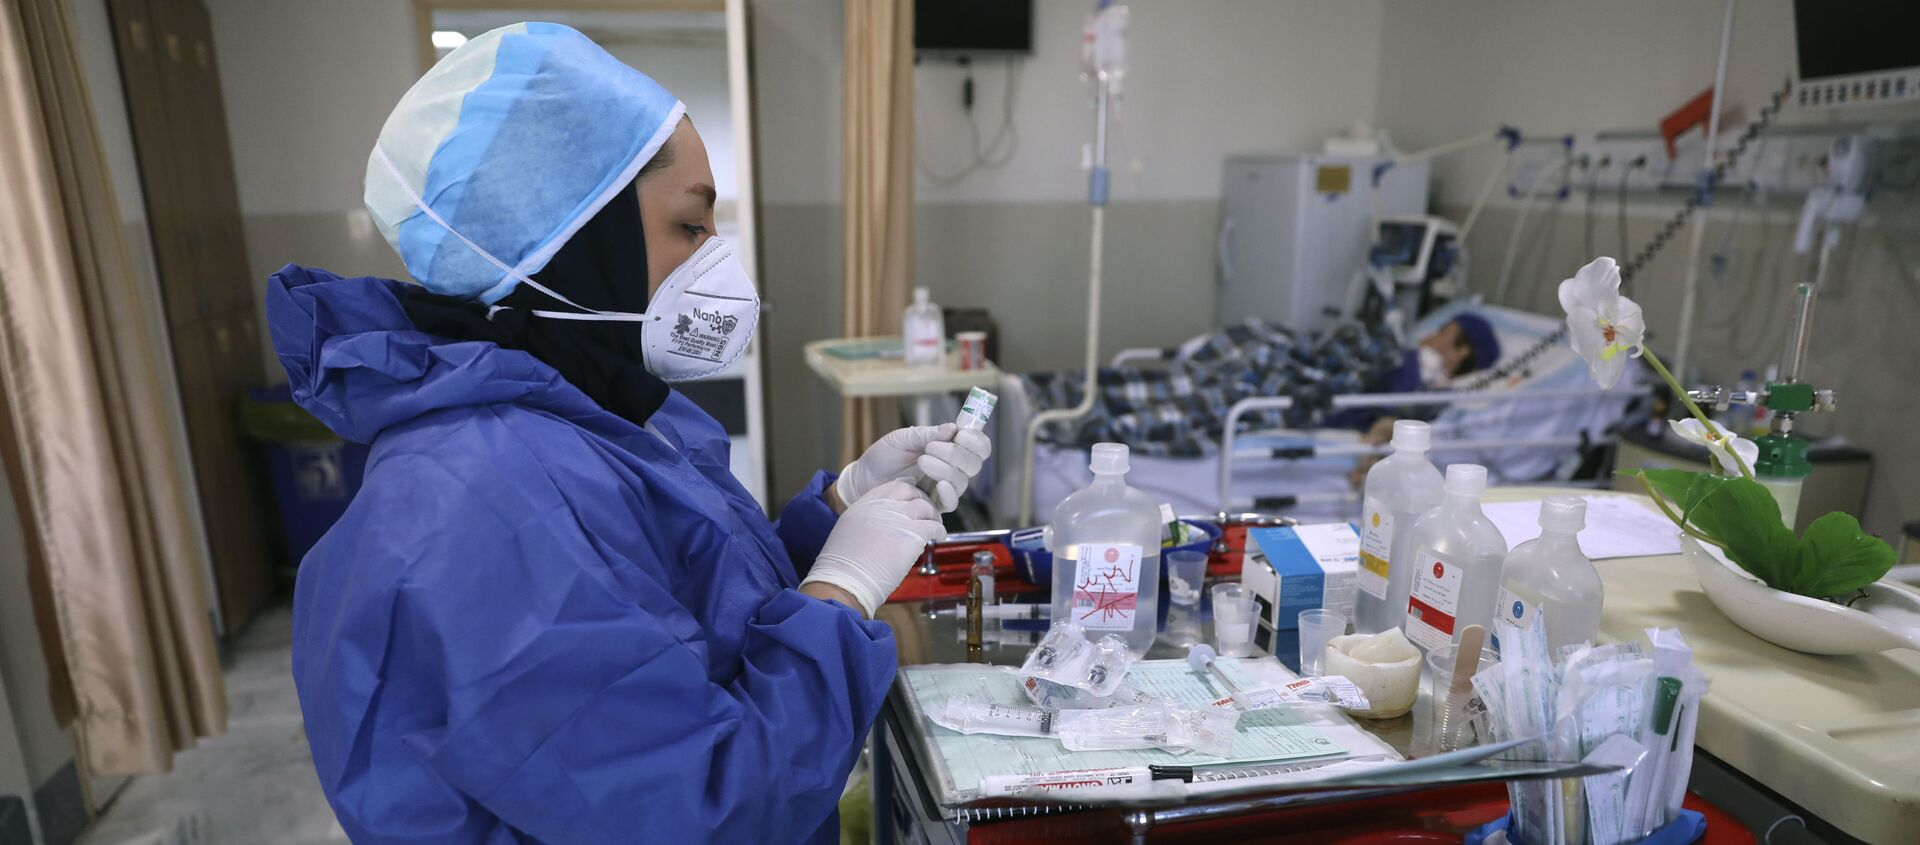 In this Tuesday, June 16, 2020, photo, a nurse prepares medicines for COVID-19 patients at the Shohadaye Tajrish Hospital in Tehran, Iran. After months of fighting the coronavirus, Iran only just saw its highest single-day spike in reported cases after Eid al-Fitr, the holiday that celebrates the end of Ramadan.  - Sputnik International, 1920, 29.04.2021